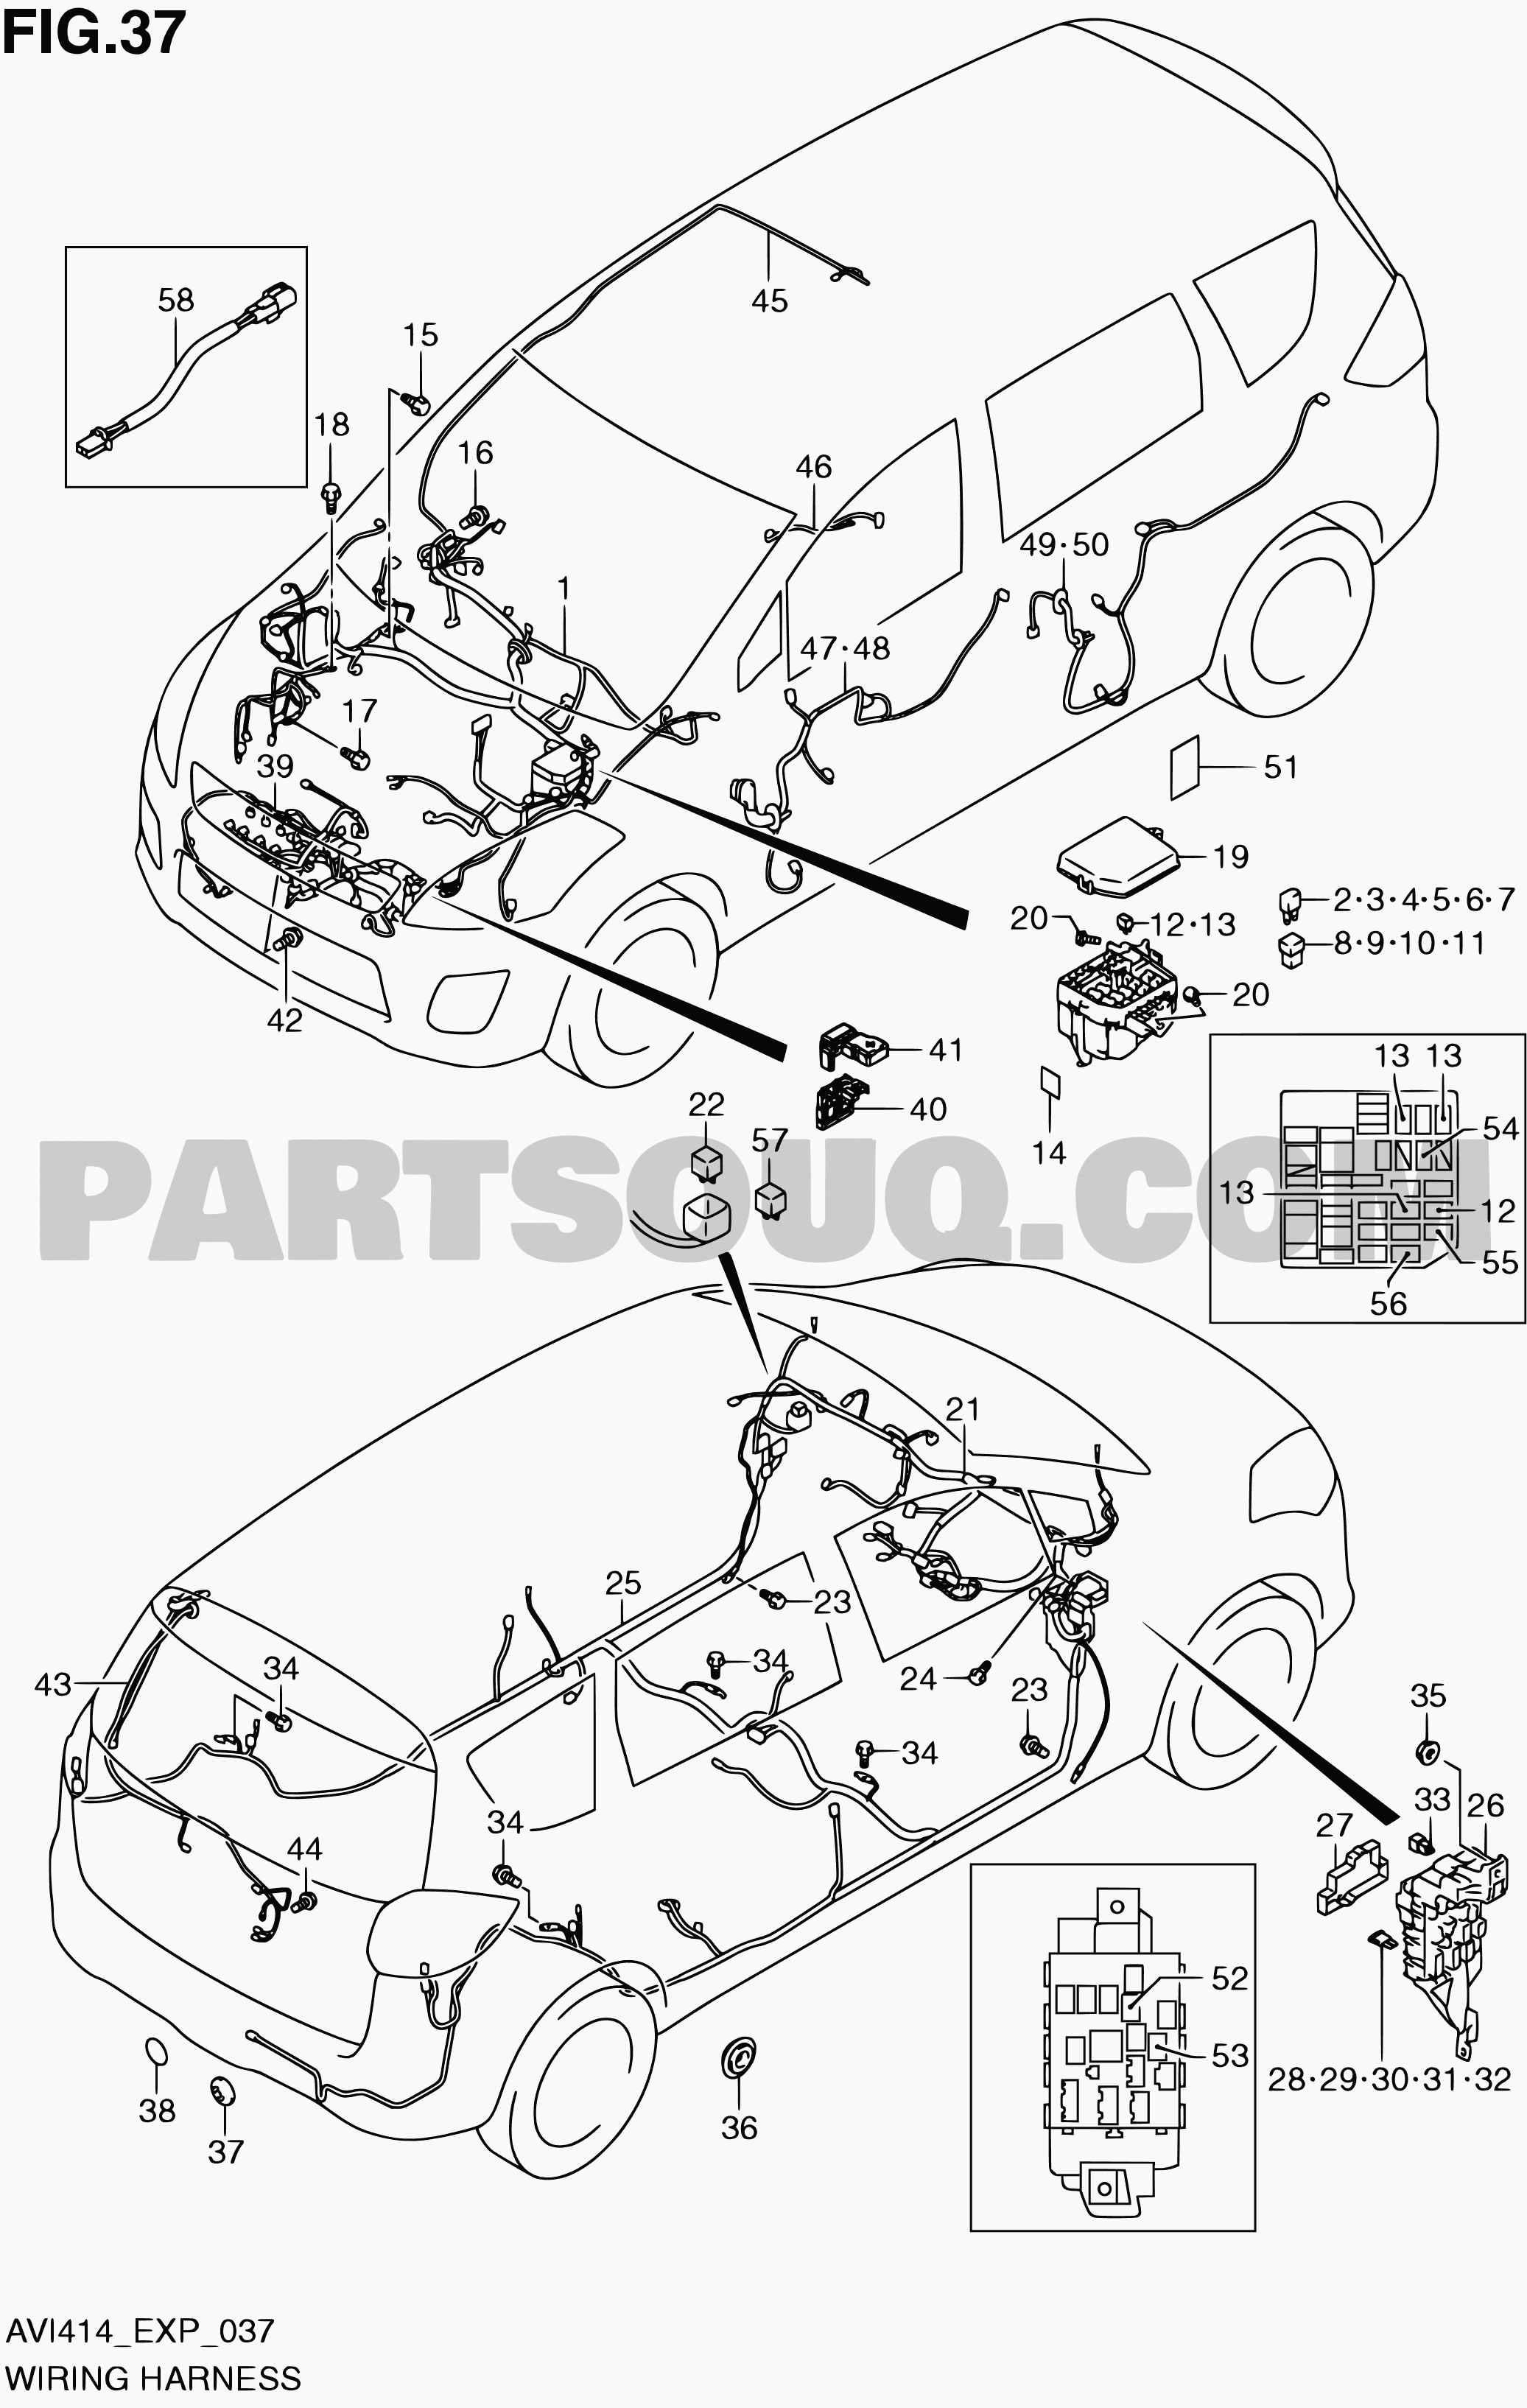 Diagram of car parts in spanish 37 wiring harness ertiga avi414 avi414 p06 p85 of diagram